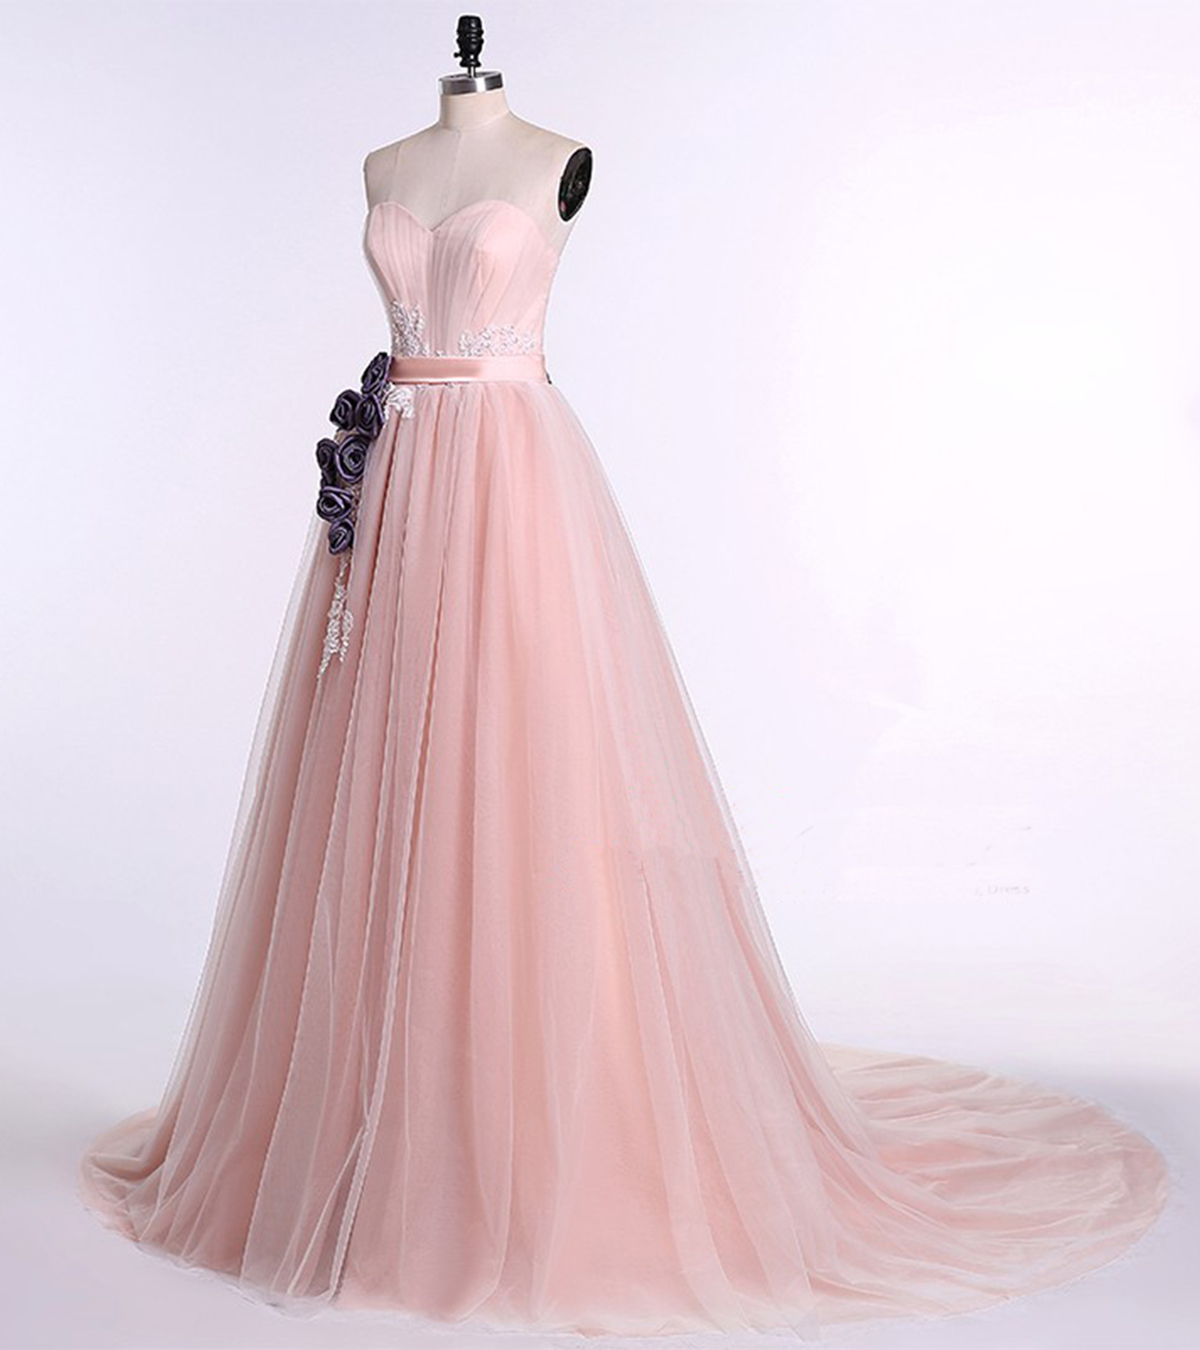 Unique Pink Tulle Sweetheart Neckline Long Senior Prom Dress With